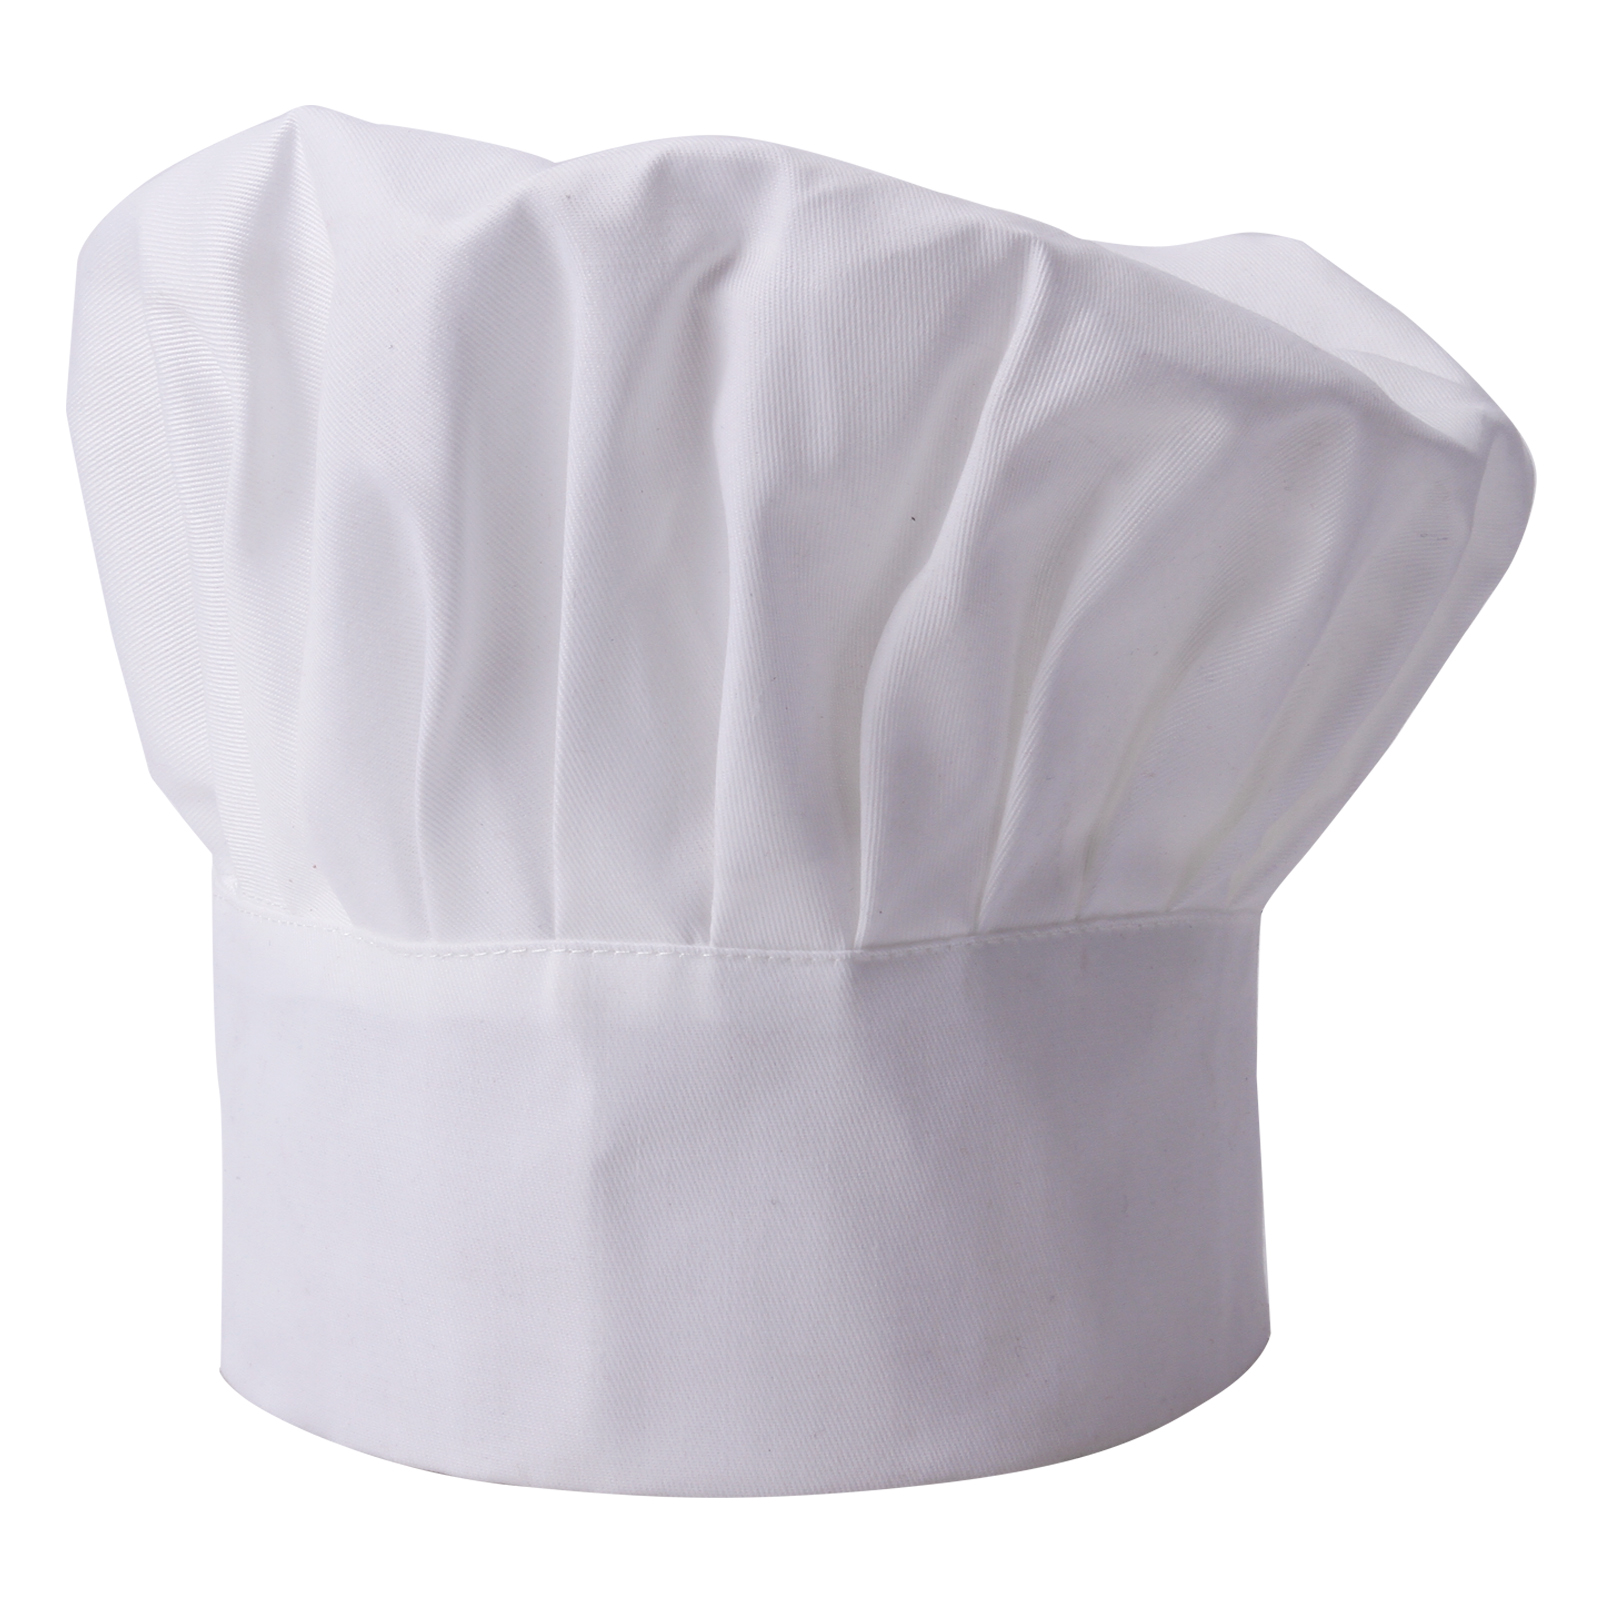 Details About Chef Hat Tall Baker Cook Chefs Hat Cap Mushroom Kitchen Black White Red